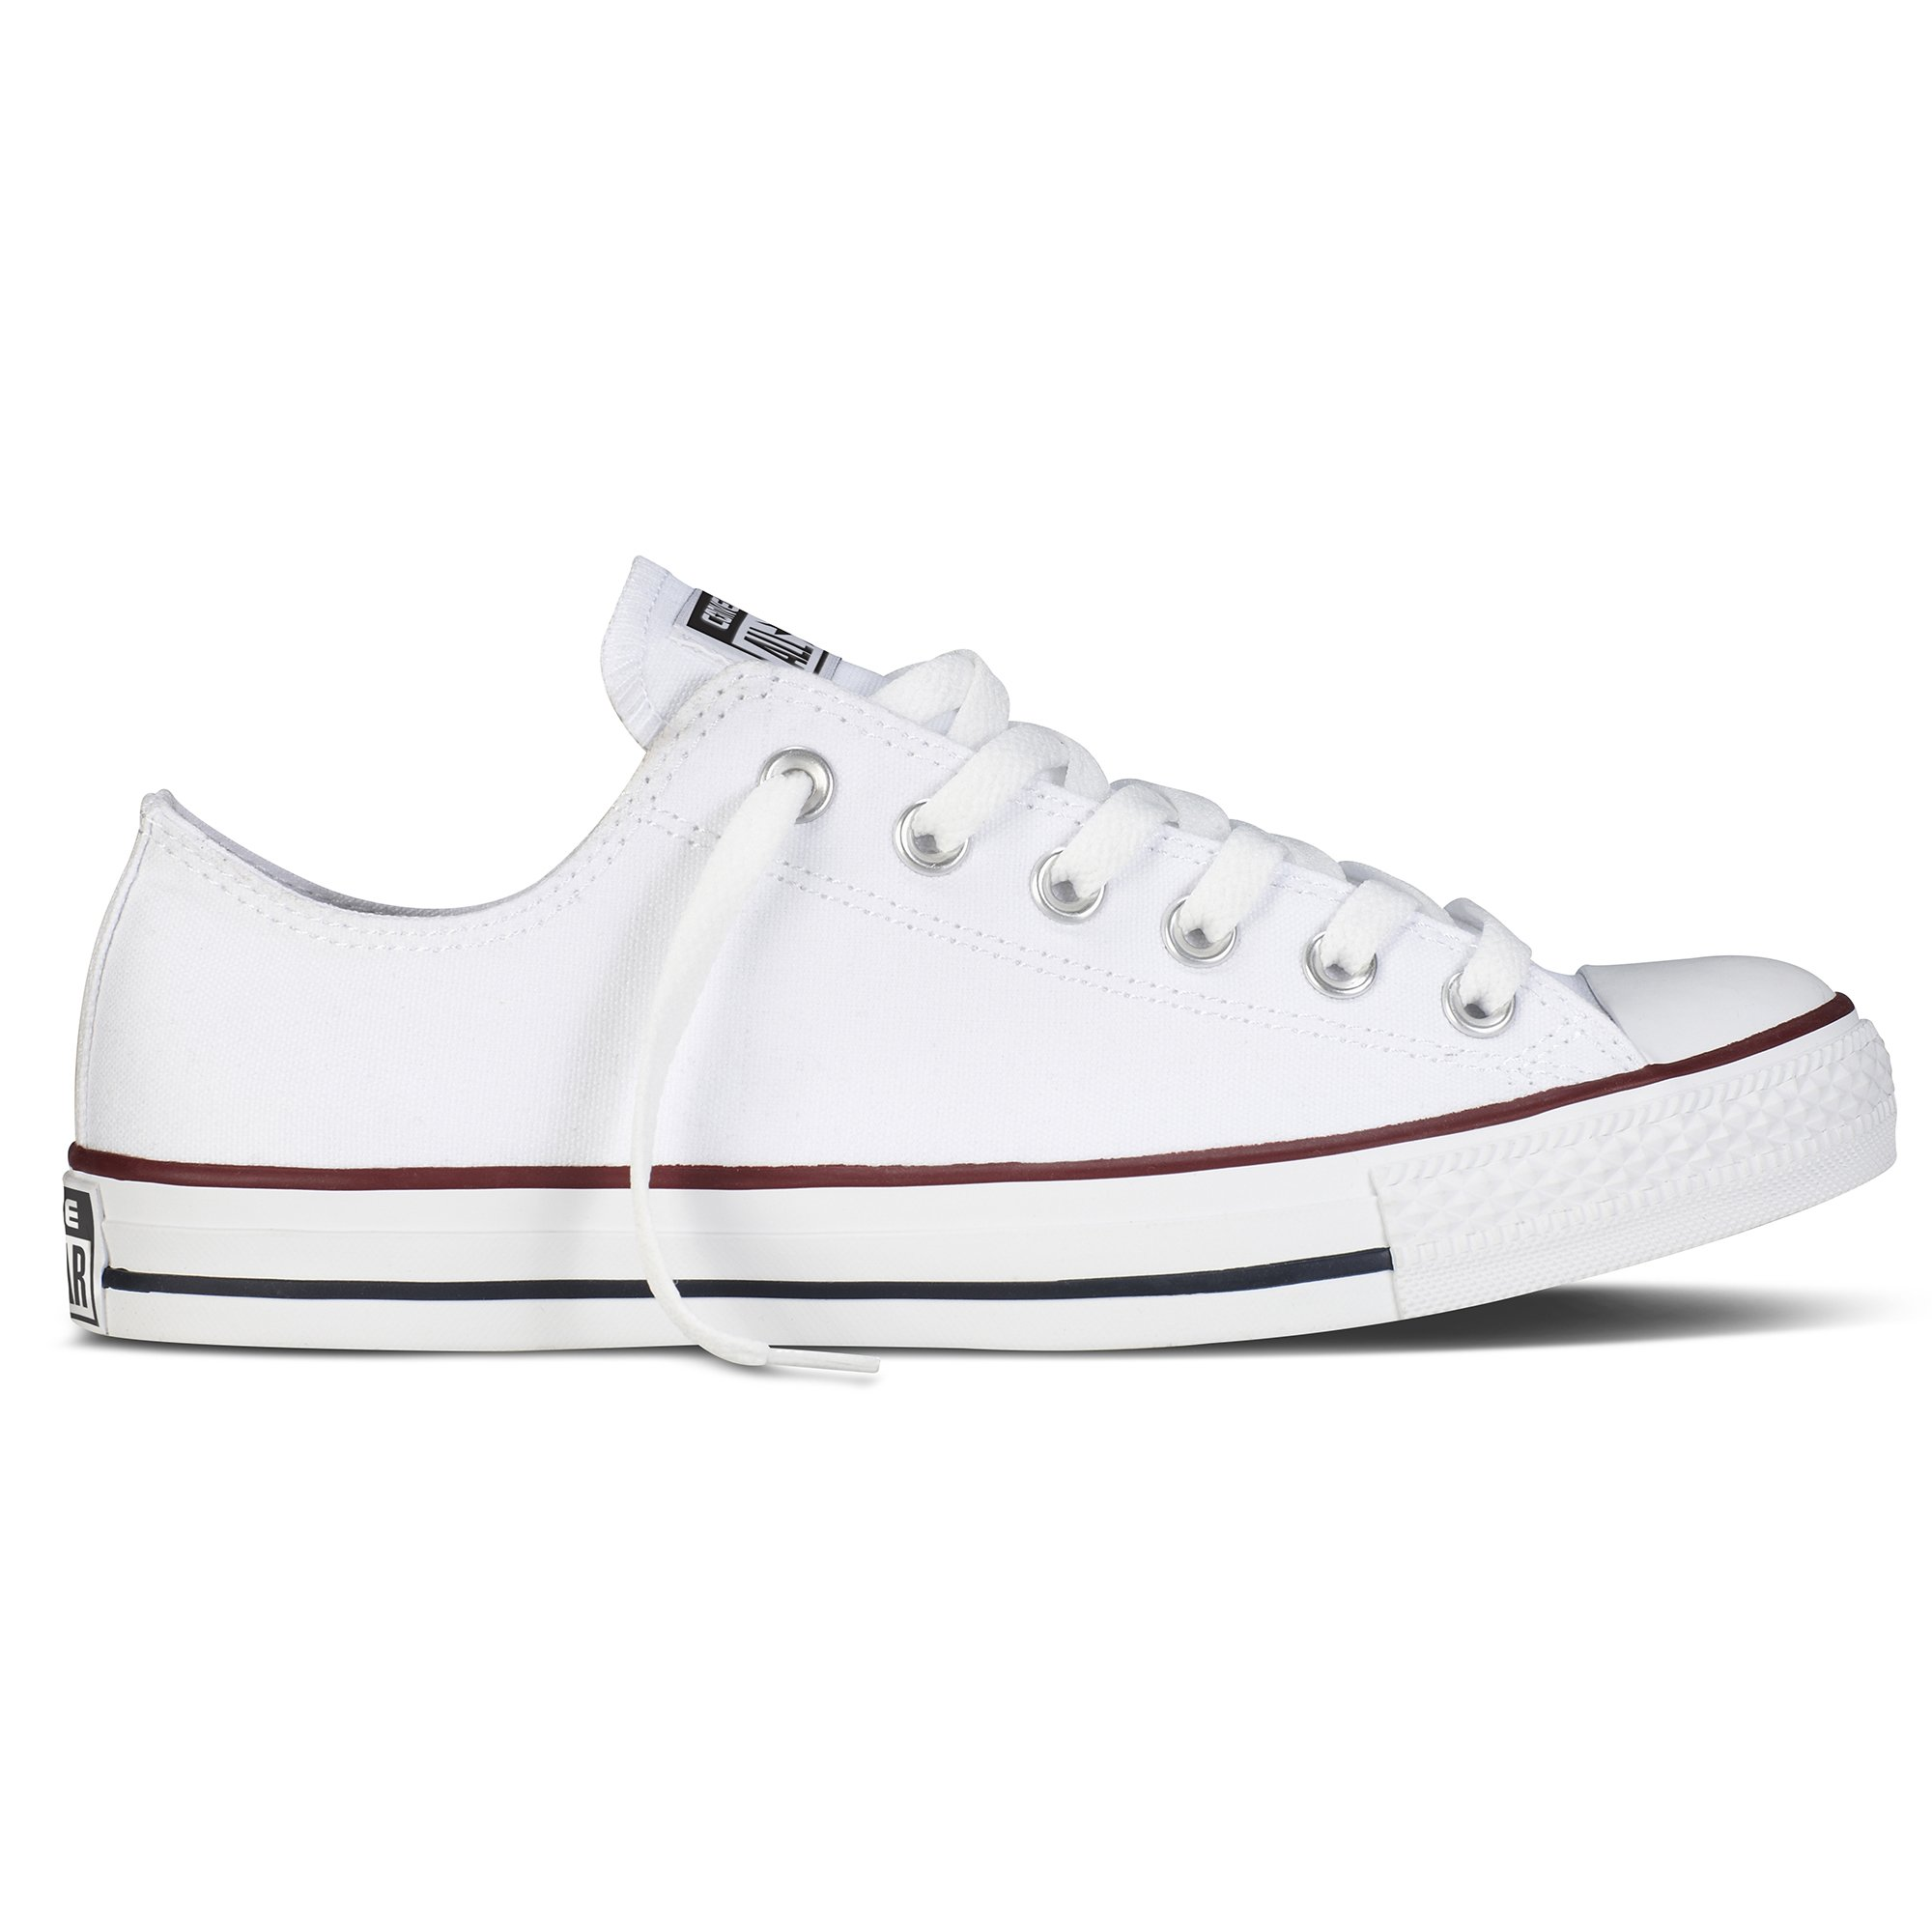 Converse Chuck Taylor All Star OX OPTICAL WHITE(Size: 12 US Men's) by Converse